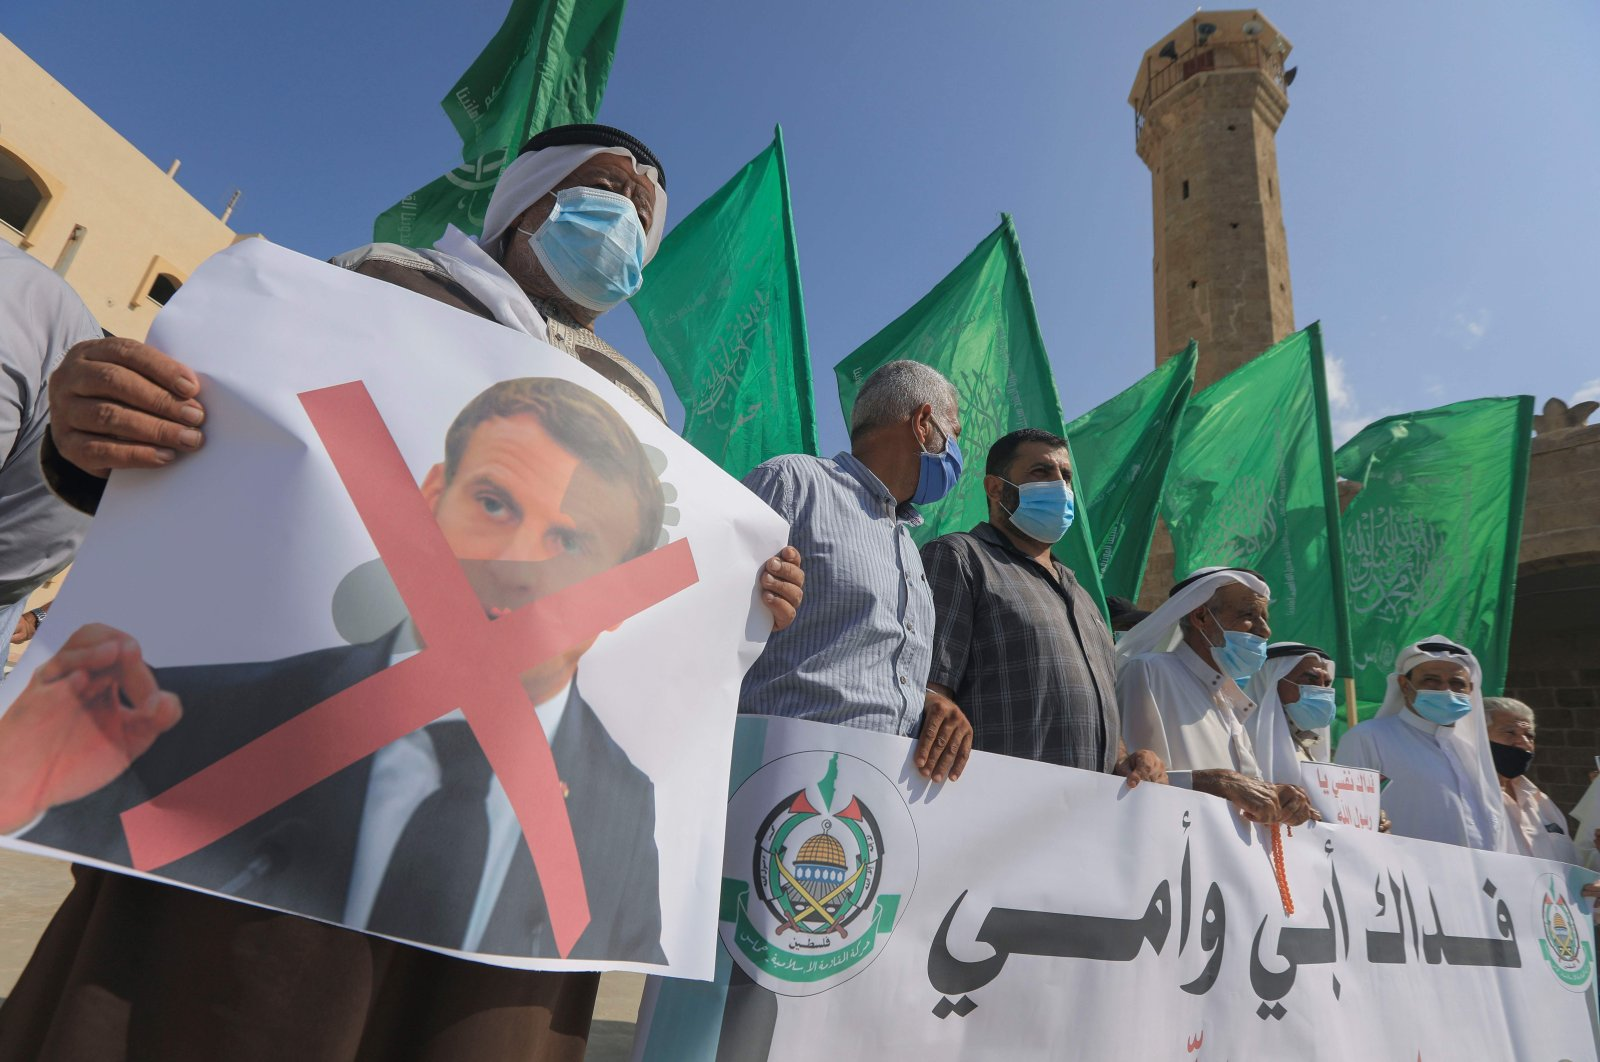 Palestinian demonstrators lift flags and placards during a rally to protest comments of French President Emmanuel Macron over Prophet Muhammed cartoons, in Deir al-Balah in the central Gaza Strip, Oct. 25, 2020. (AFP)